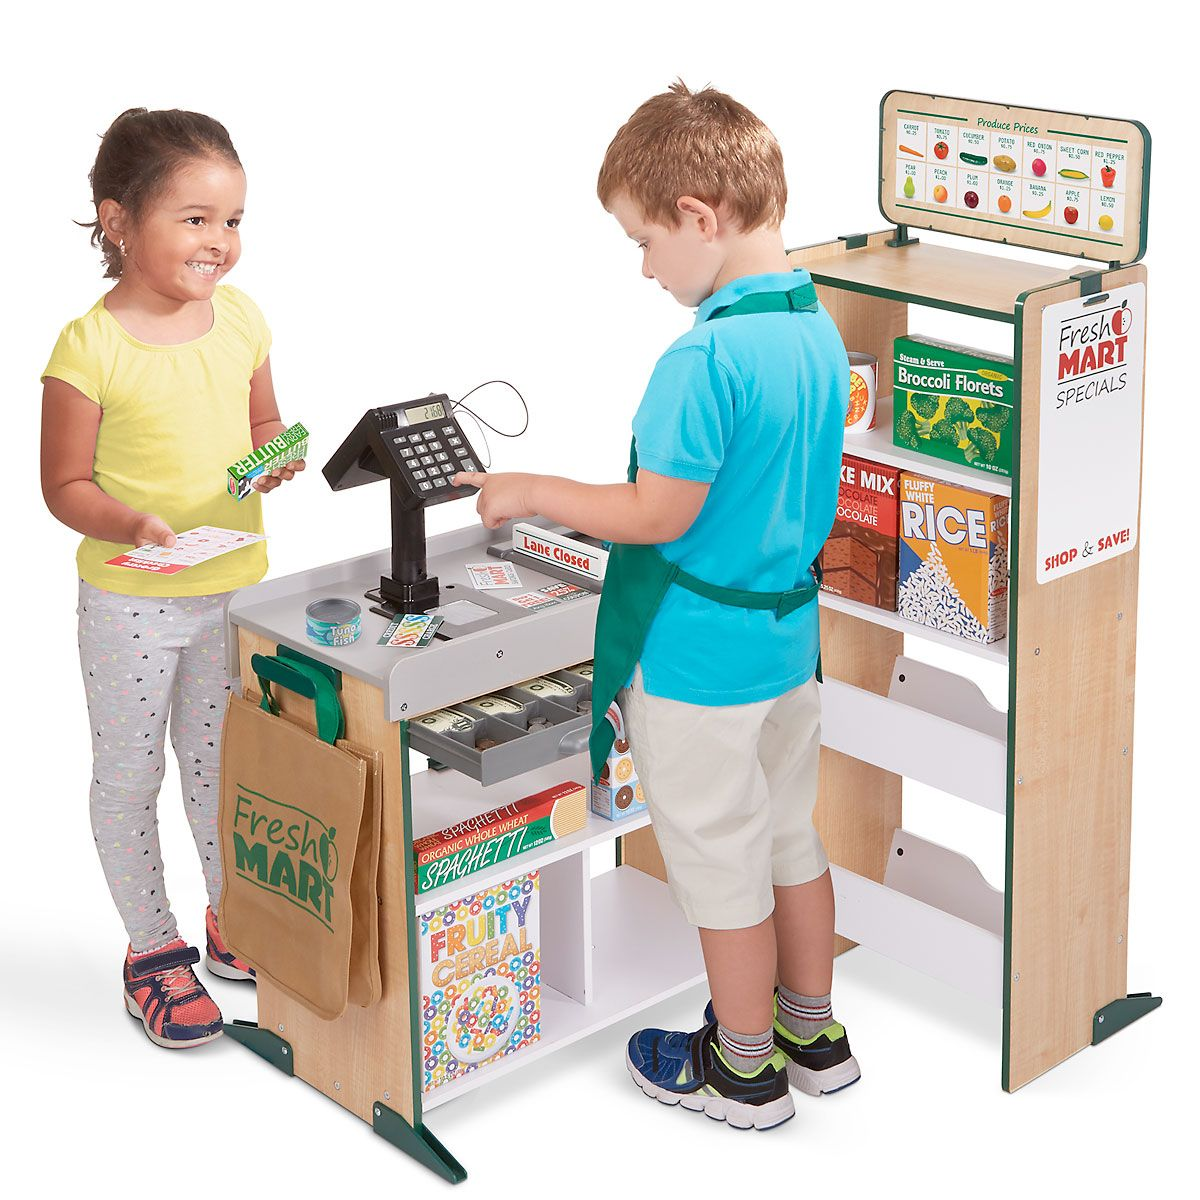 Fresh Mart Grocery Store by Melissa & Doug®